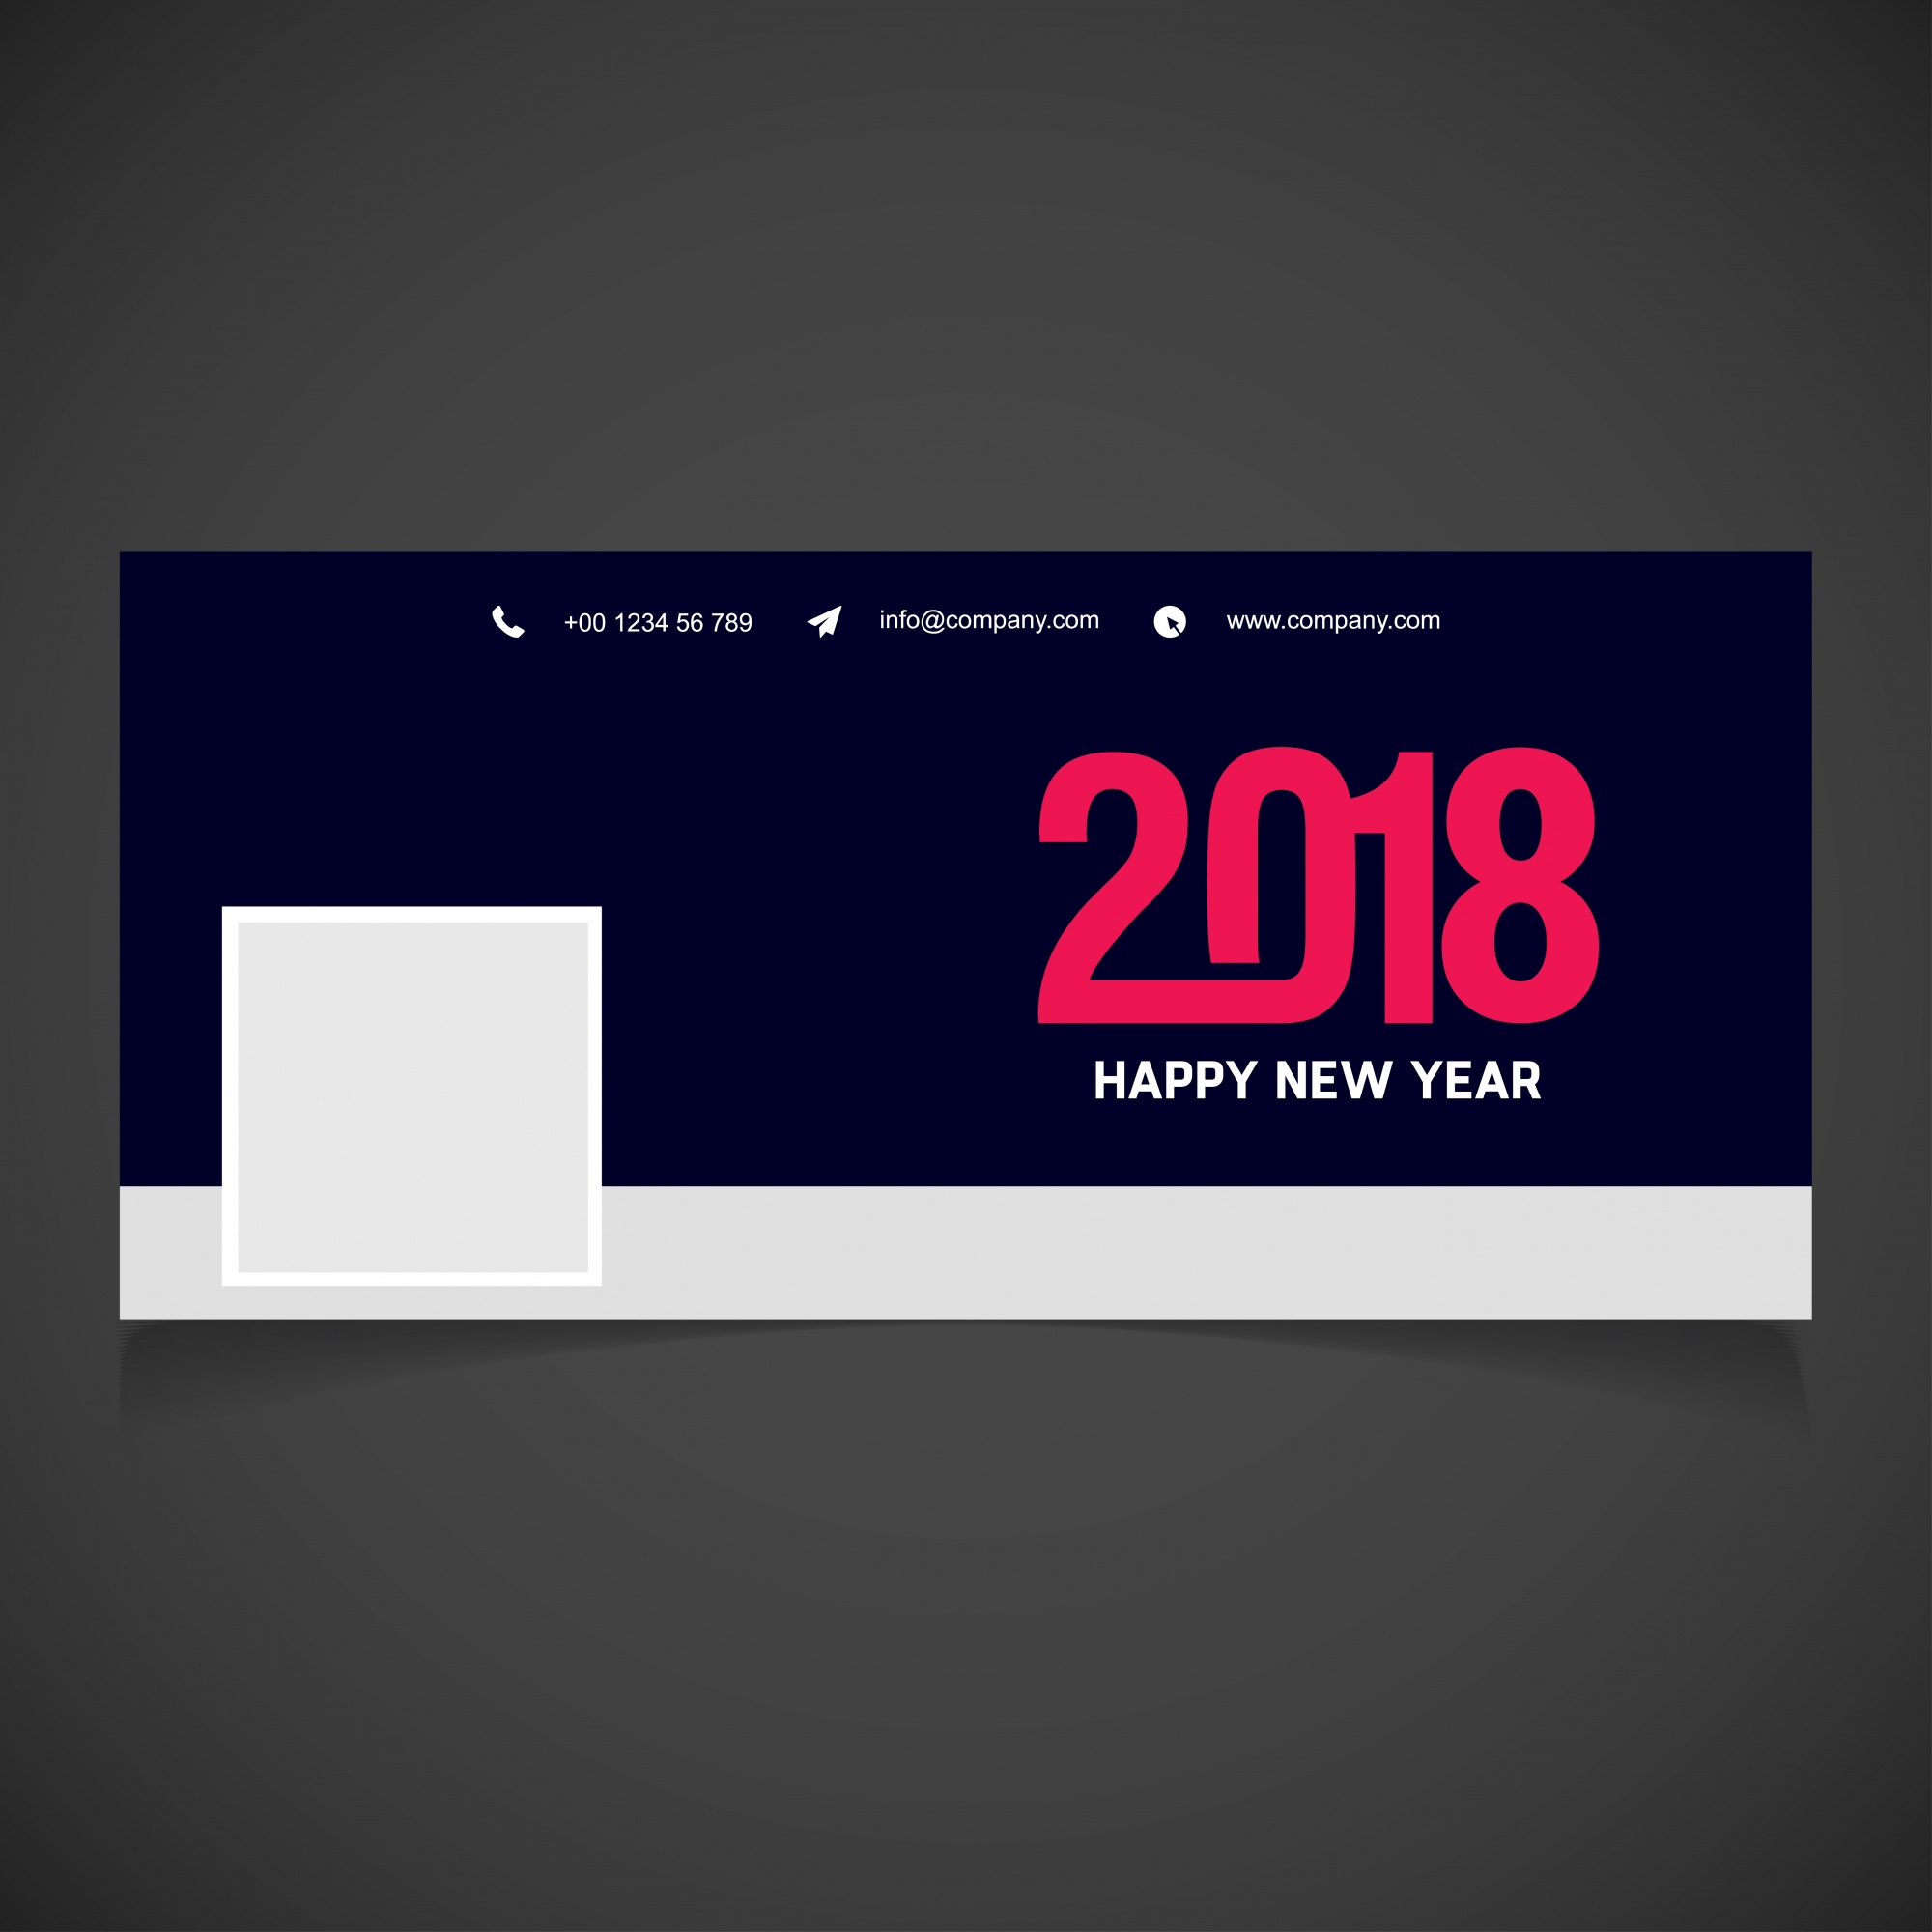 Elegant new year 2018 facebook cover